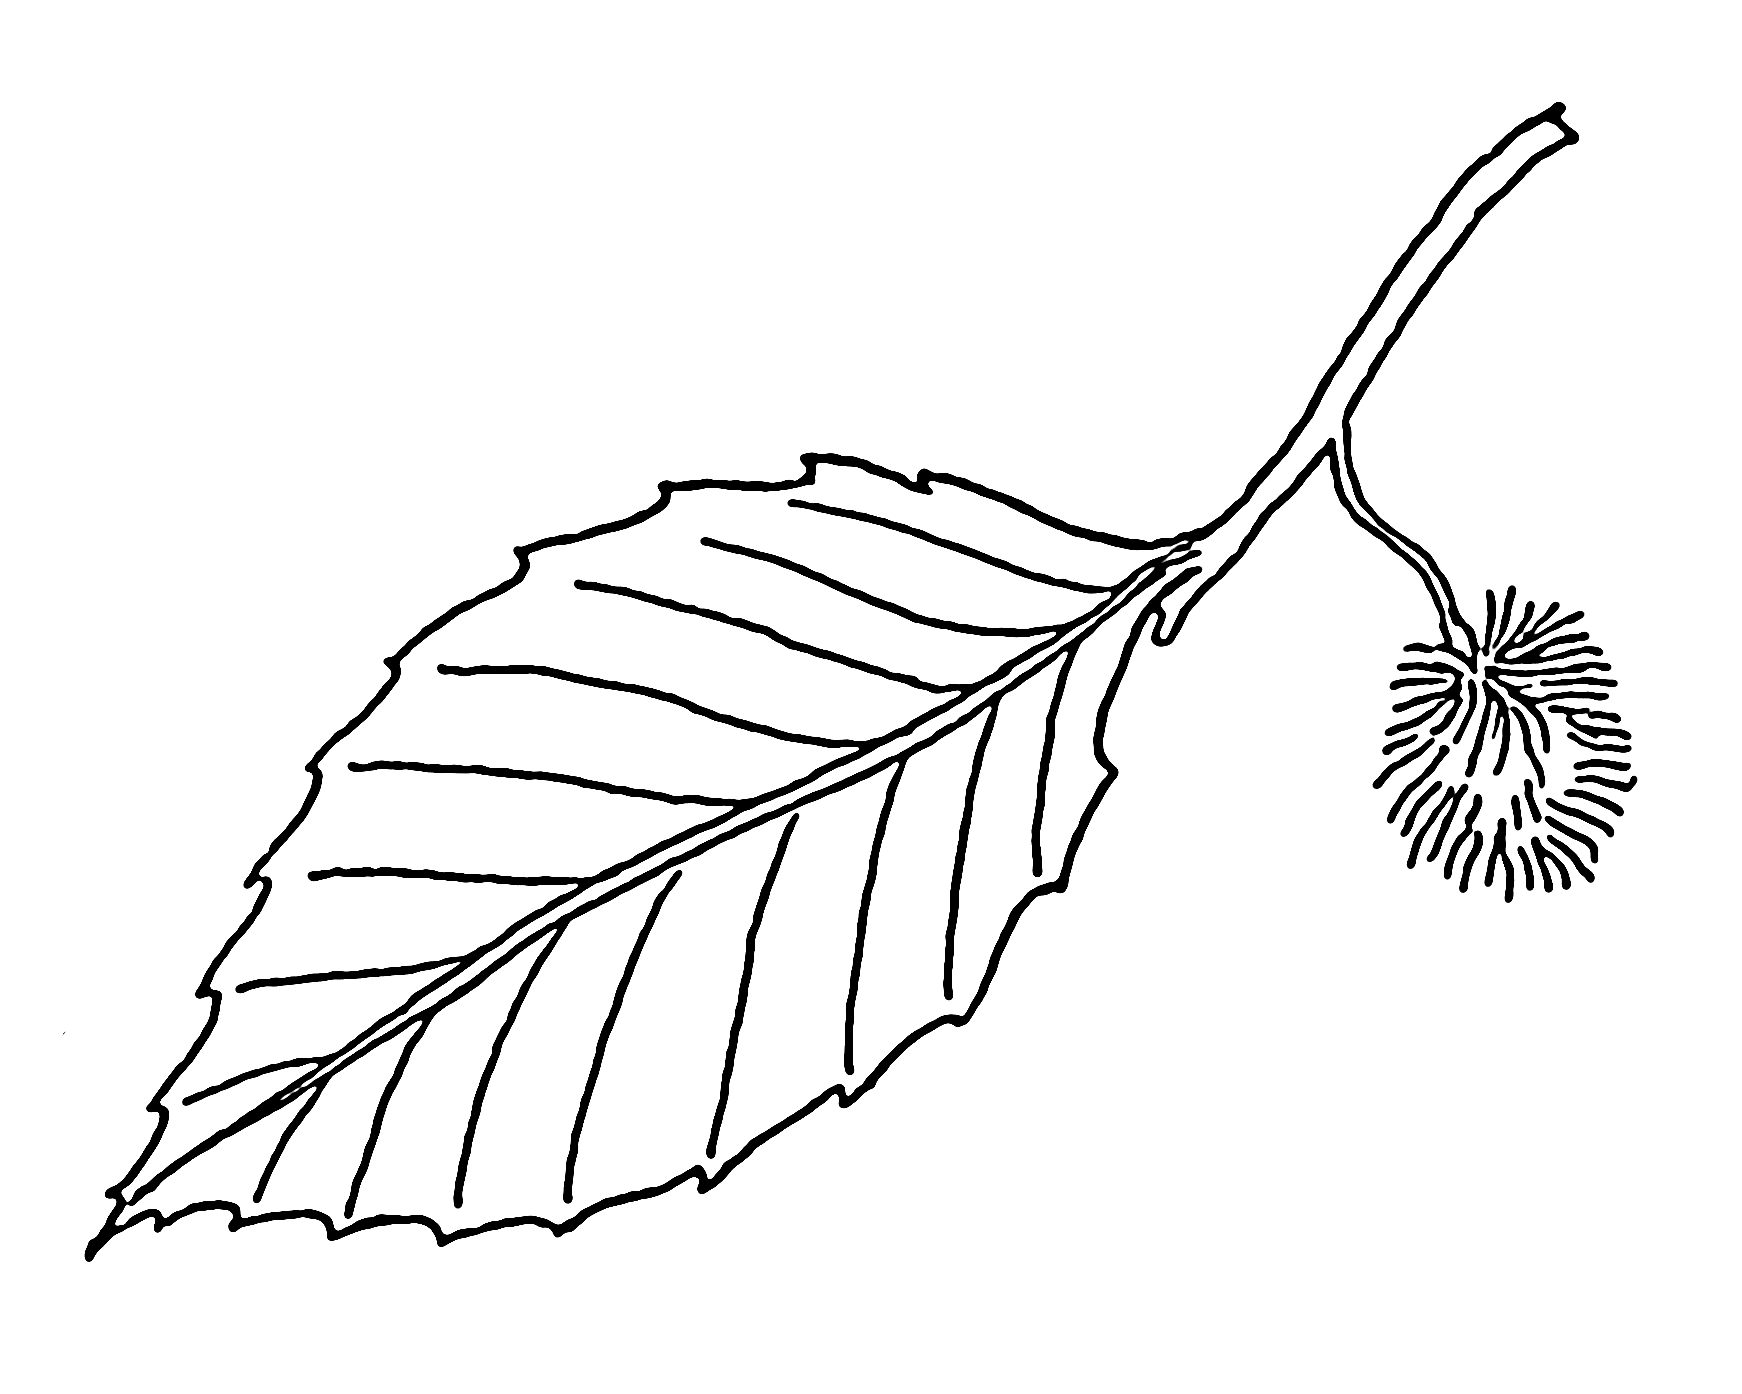 Leaves Drawing - ClipArt Best